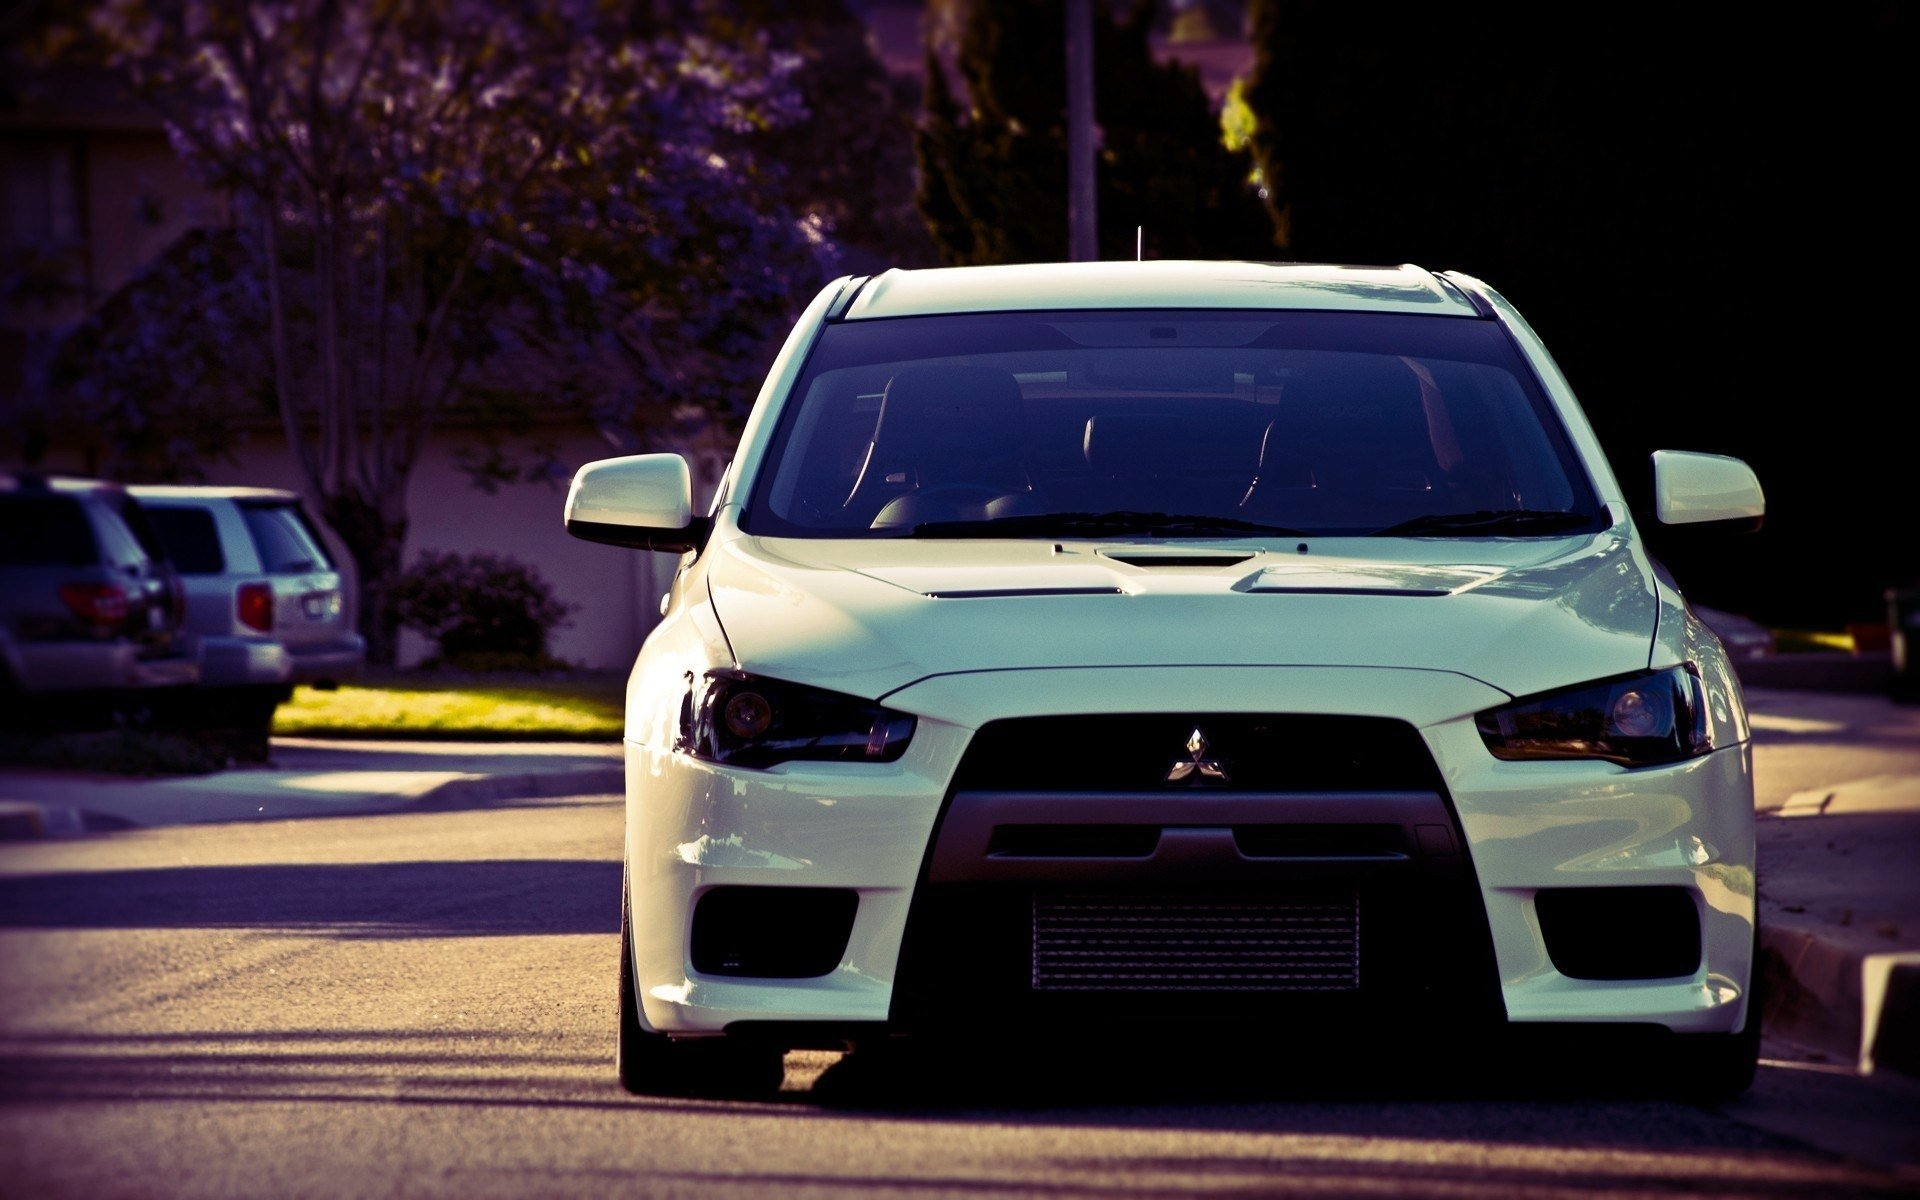 77 mitsubishi evolution x hd wallpapers | background images